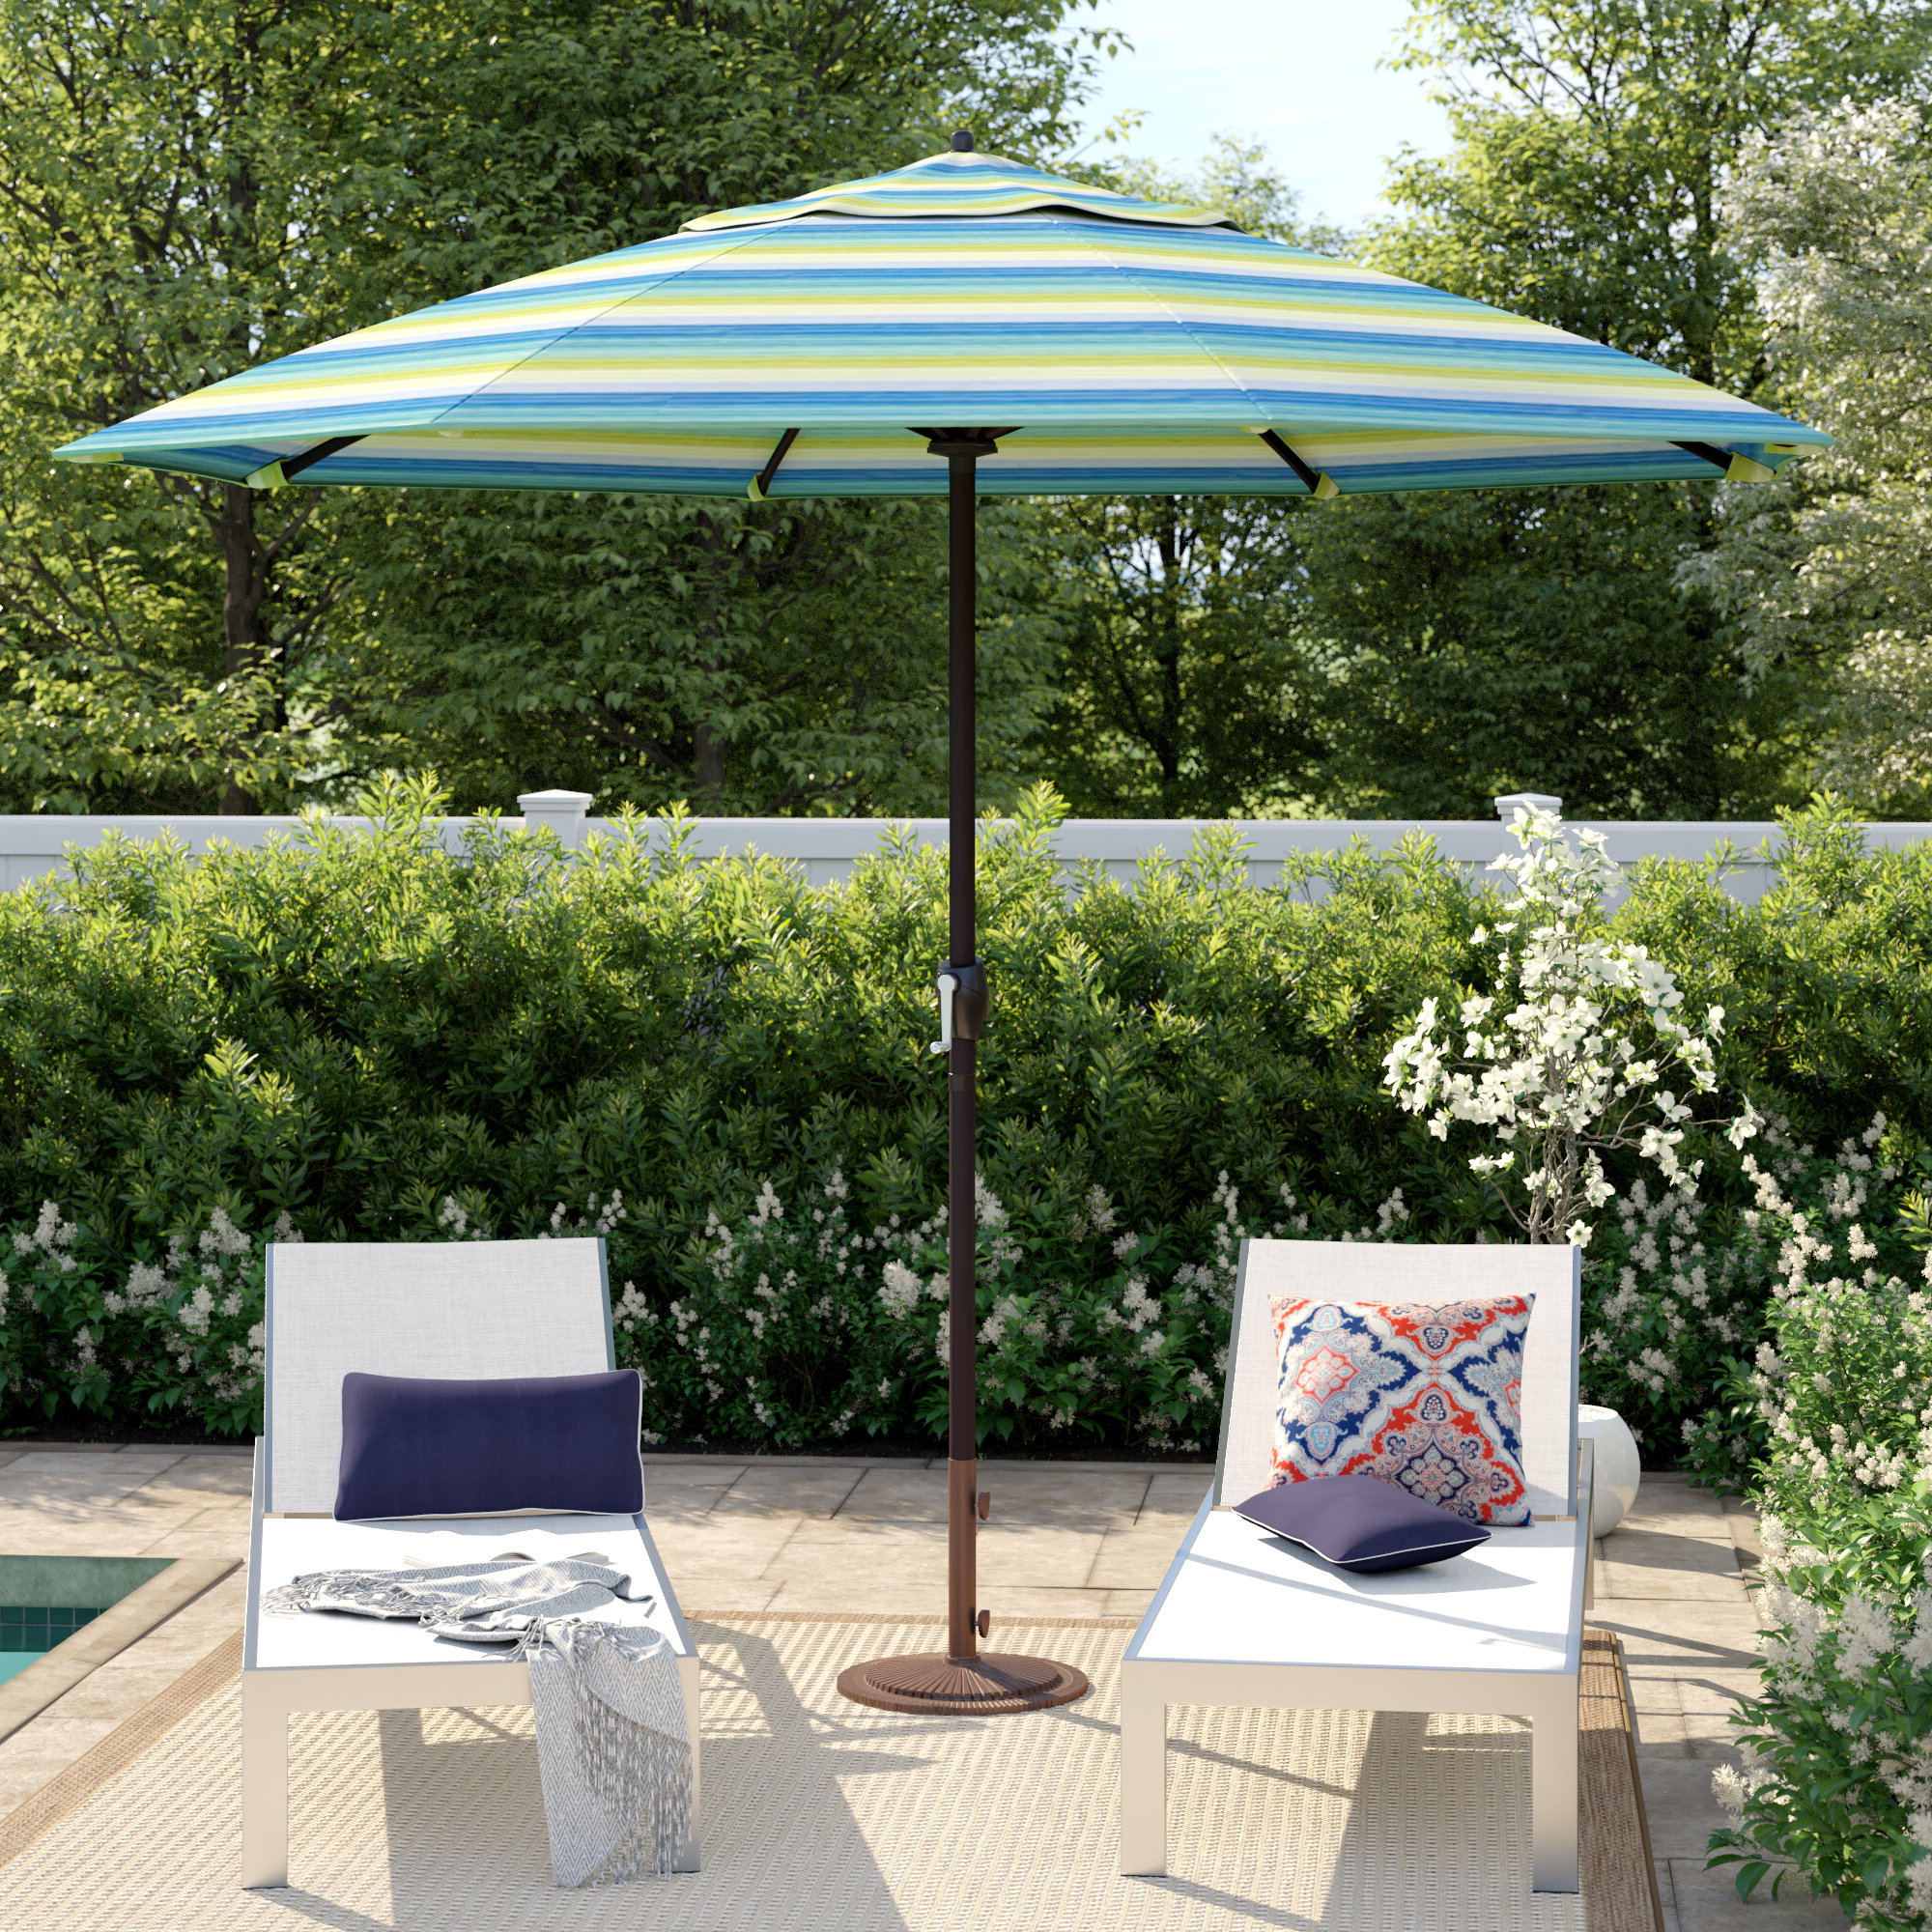 Cardine 9' Market Sunbrella Umbrella Pertaining To Popular Gainsborough Market Umbrellas (View 14 of 20)